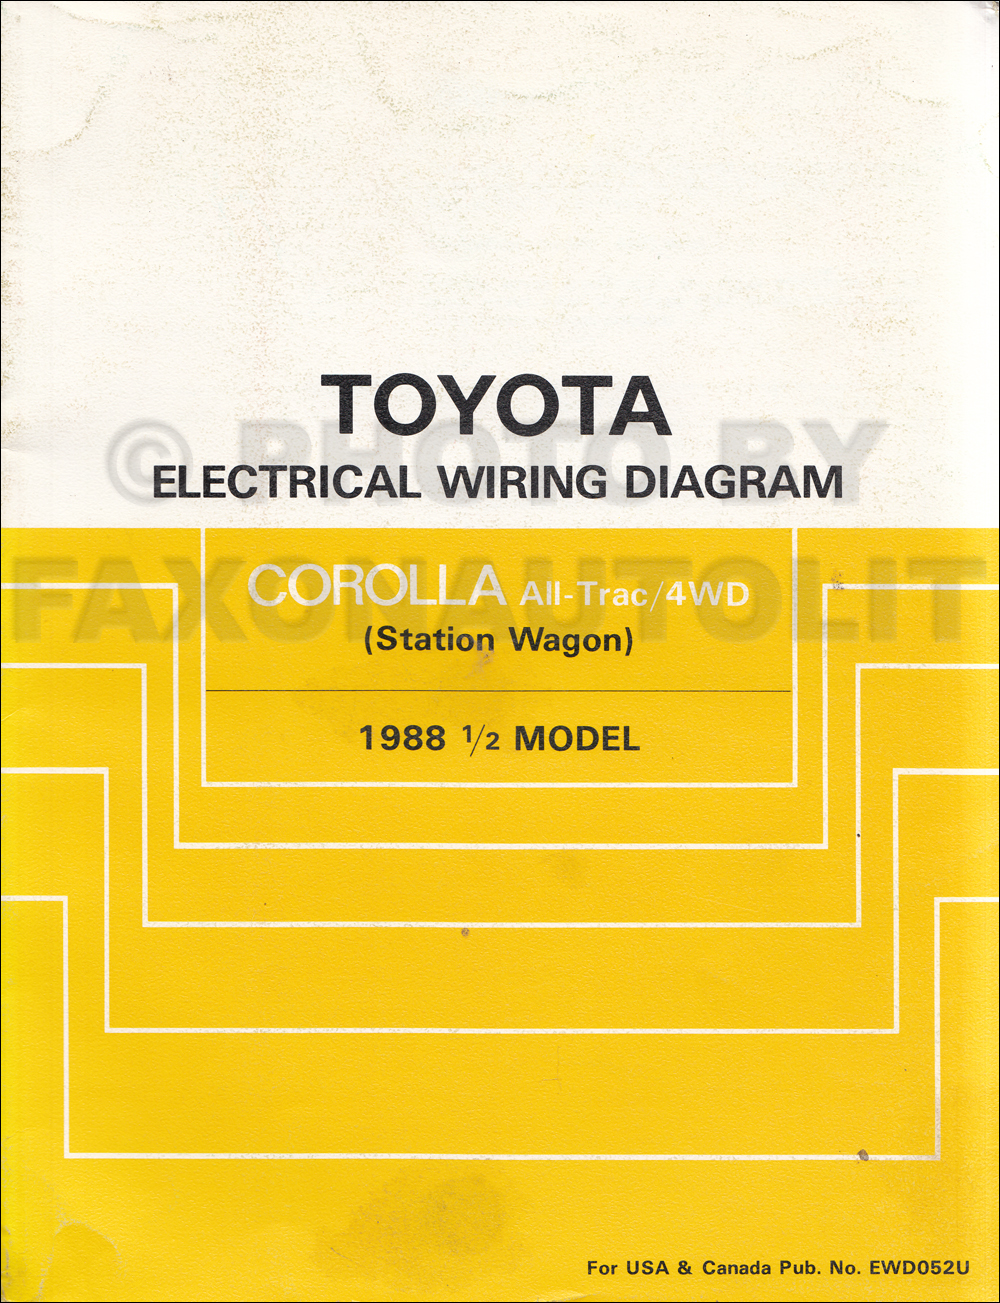 1988 toyota corolla all trac4wd station wagon wiring diagram manual 1988 toyota corolla all trac4wd station wagon wiring diagram manual original asfbconference2016